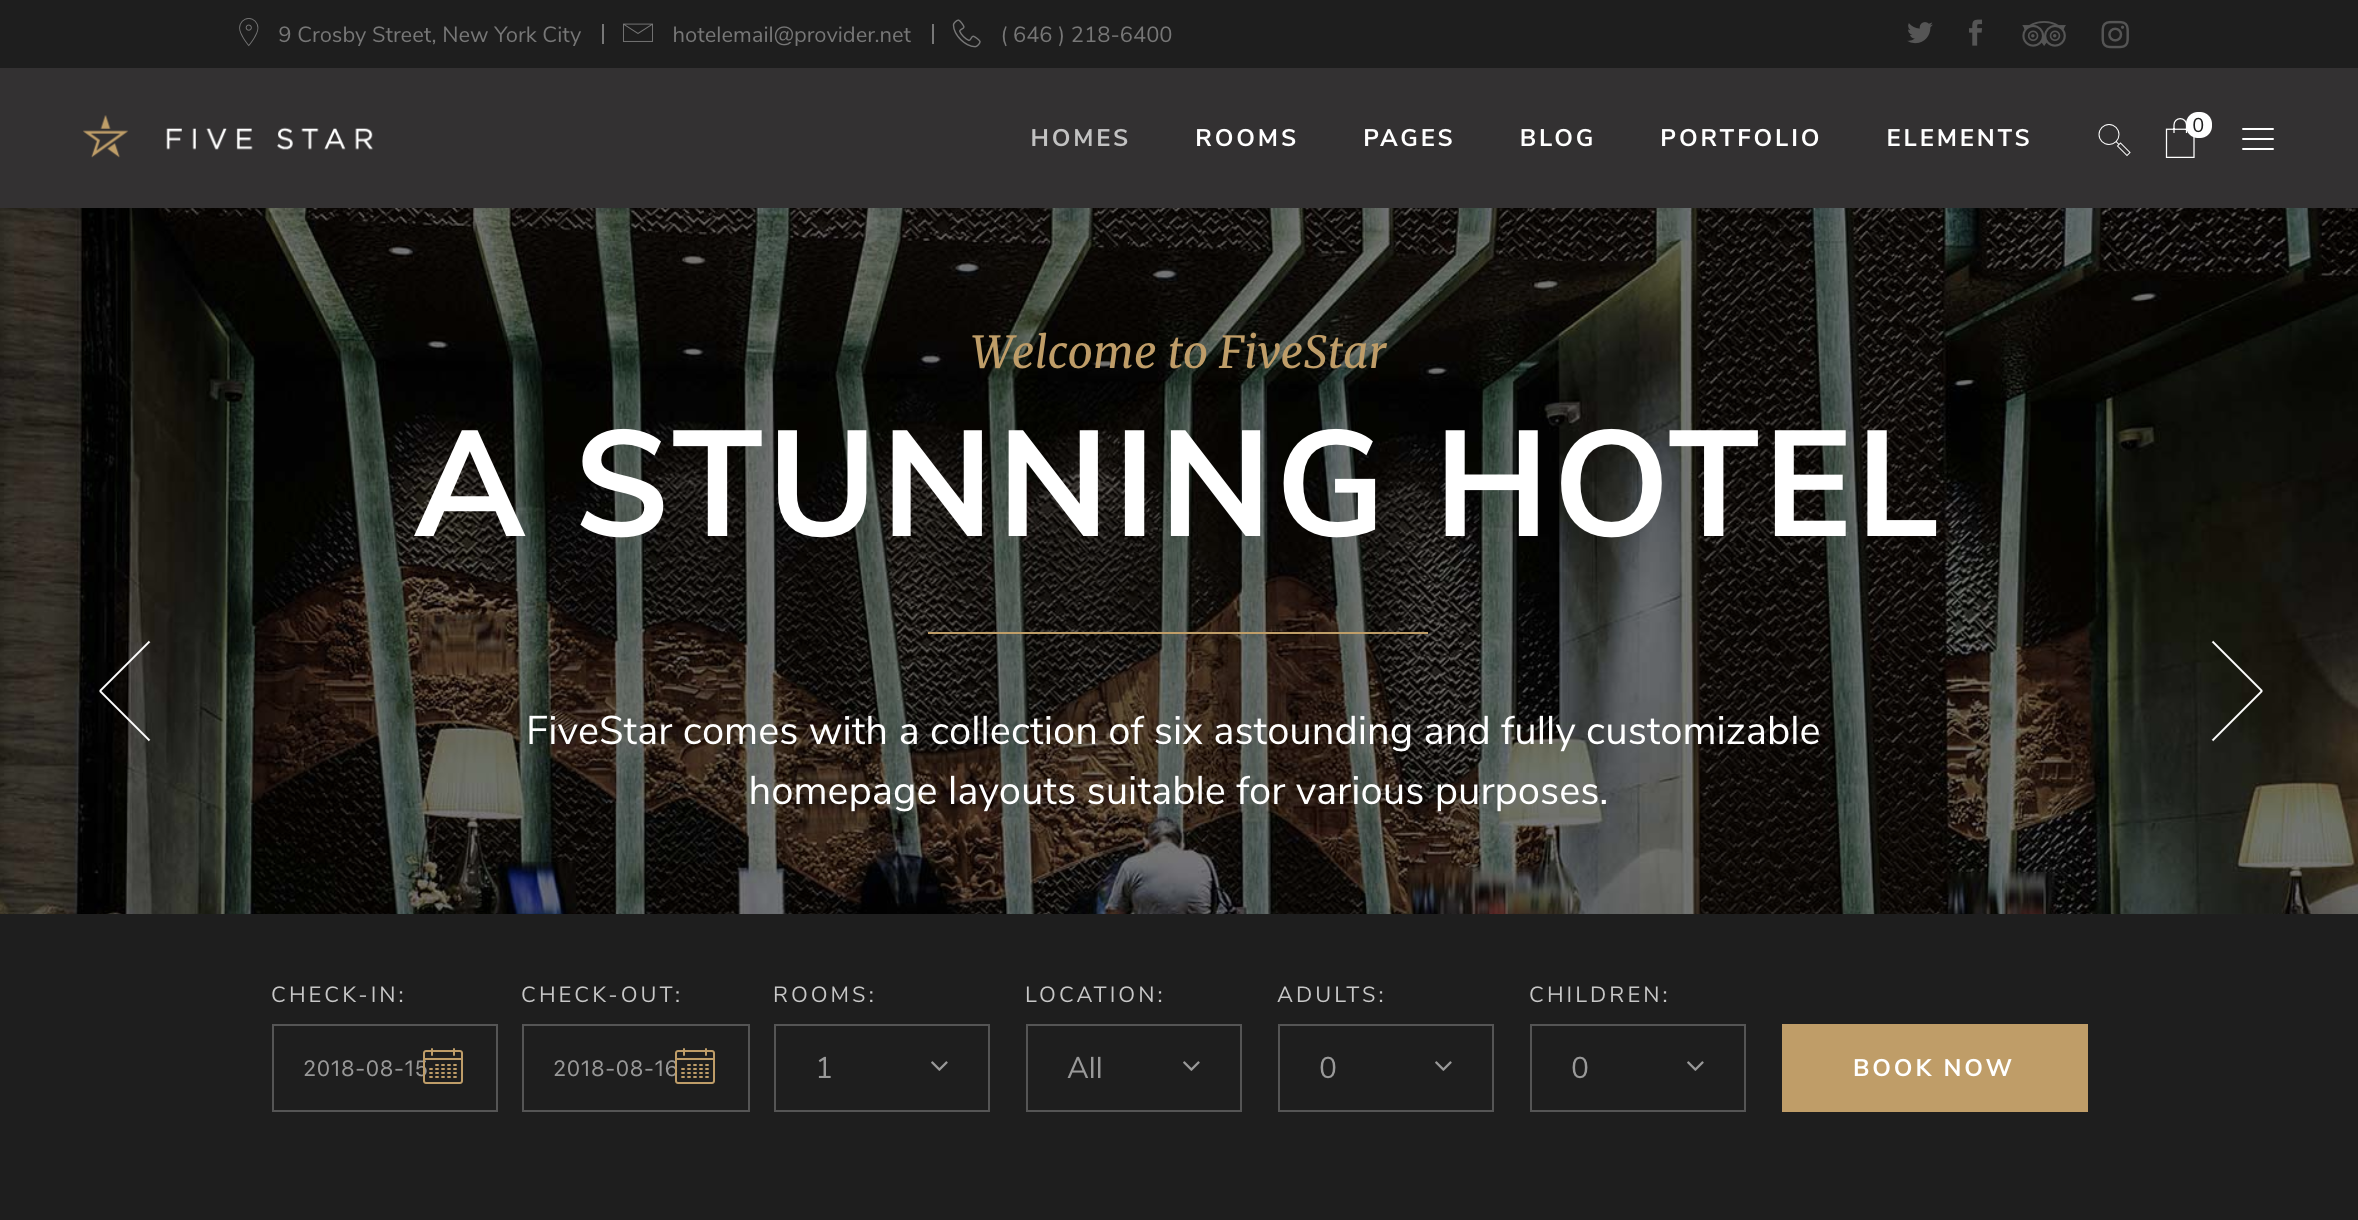 dede982f09b 15+ Hotel, Booking, Apartment, Room, Vacation, Spa WordPress Themes 2019